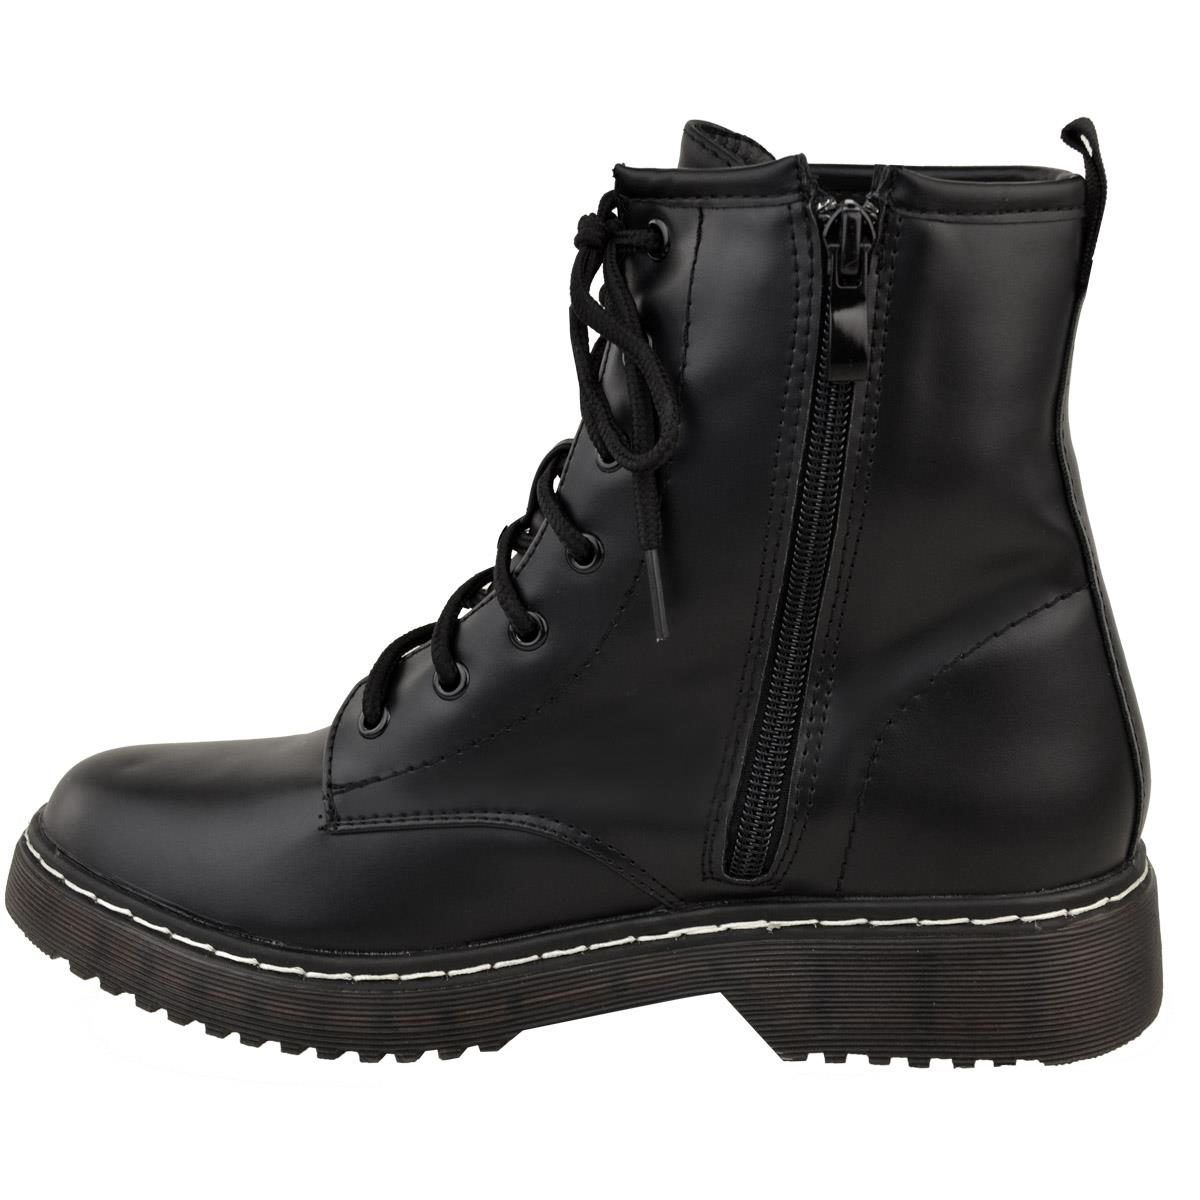 Womens-Ladies-Doc-Ankle-Boots-Low-Flat-Heel-Lace-Up-Worker-Army-Black-Goth-Size miniatuur 4